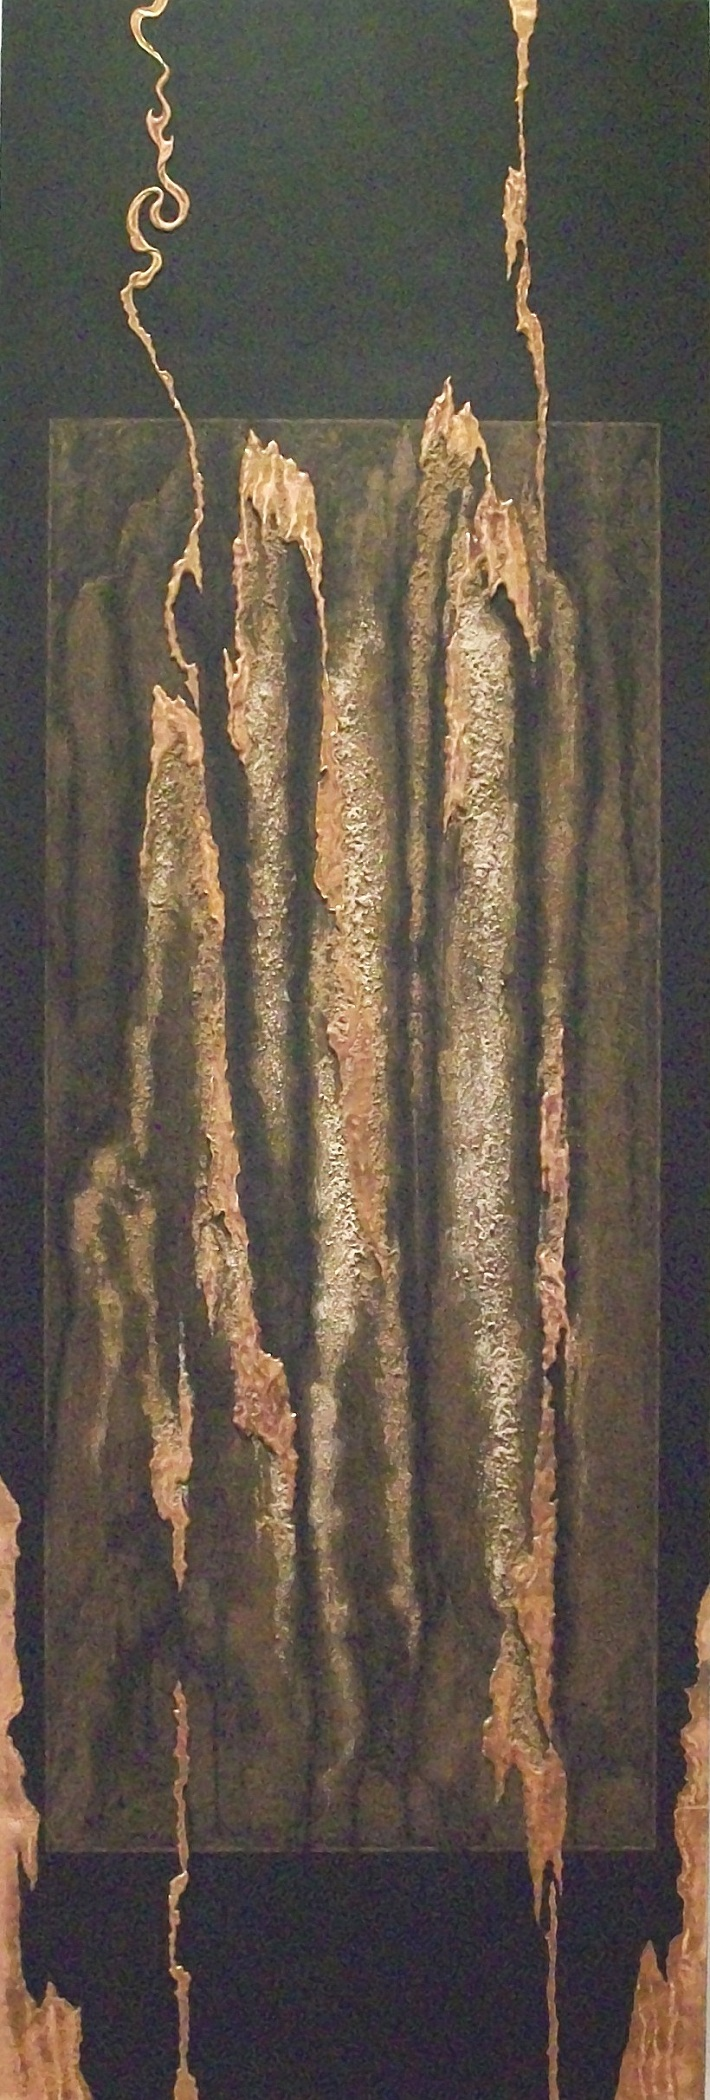 YARA DIPTYCH ,  Yara 2,  2010, copper repoussé elements, mineral particles and acrylic on archival wood panel, 70H x 23.5W x 2D inches.